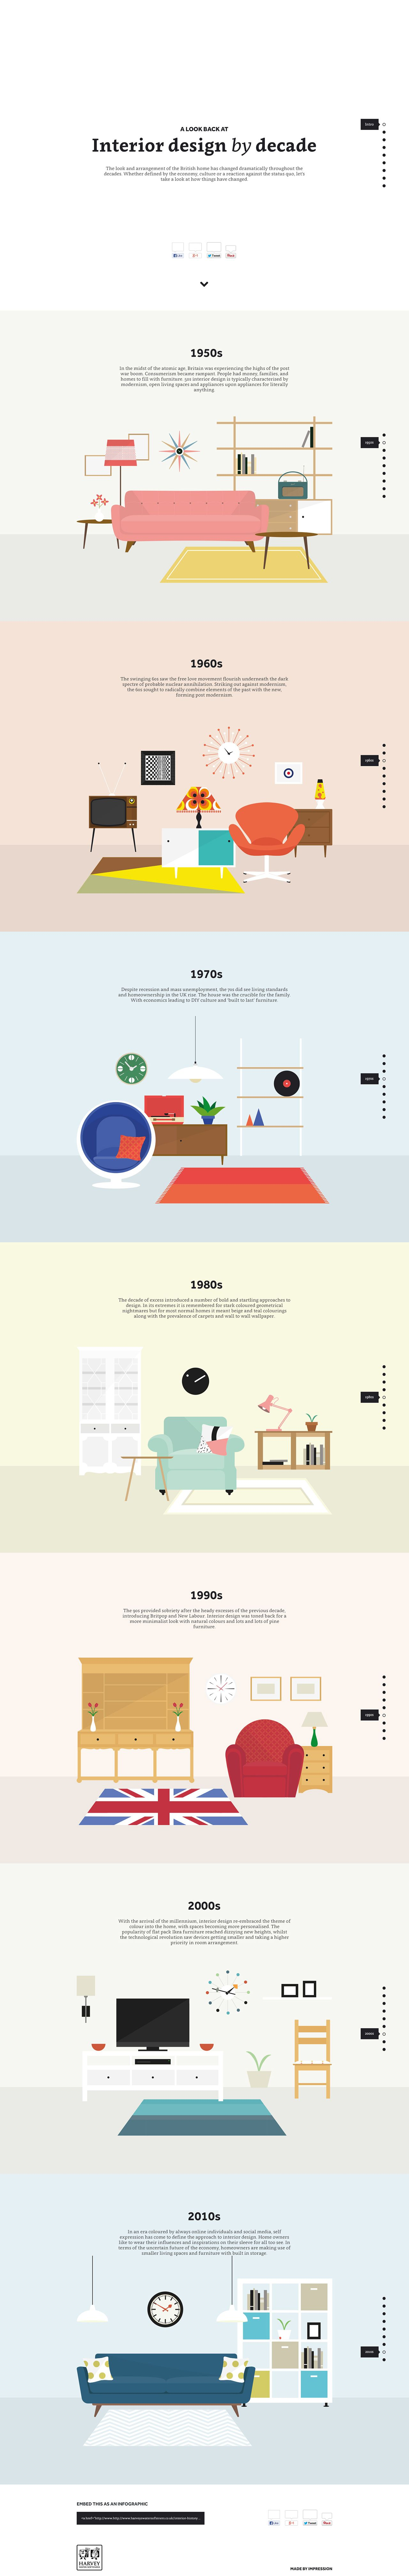 Lovely Informational One Pager Showcasing How Interior